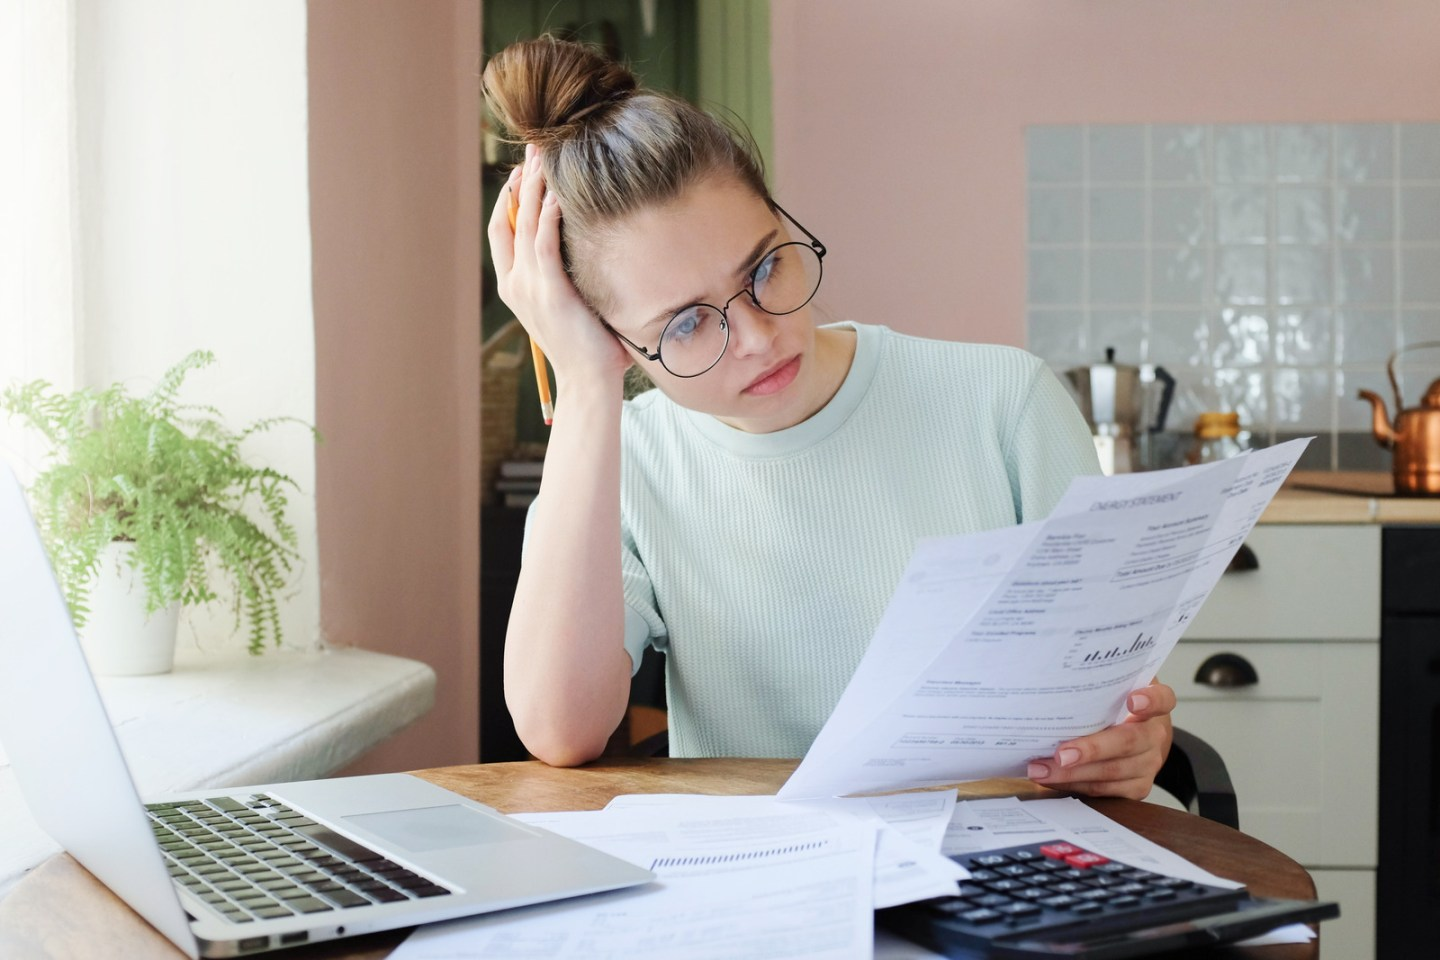 Young frustrated unhappy tired woman with financial troubles, sitting at kitchen table with papers, calculator and laptop computer, reading documents